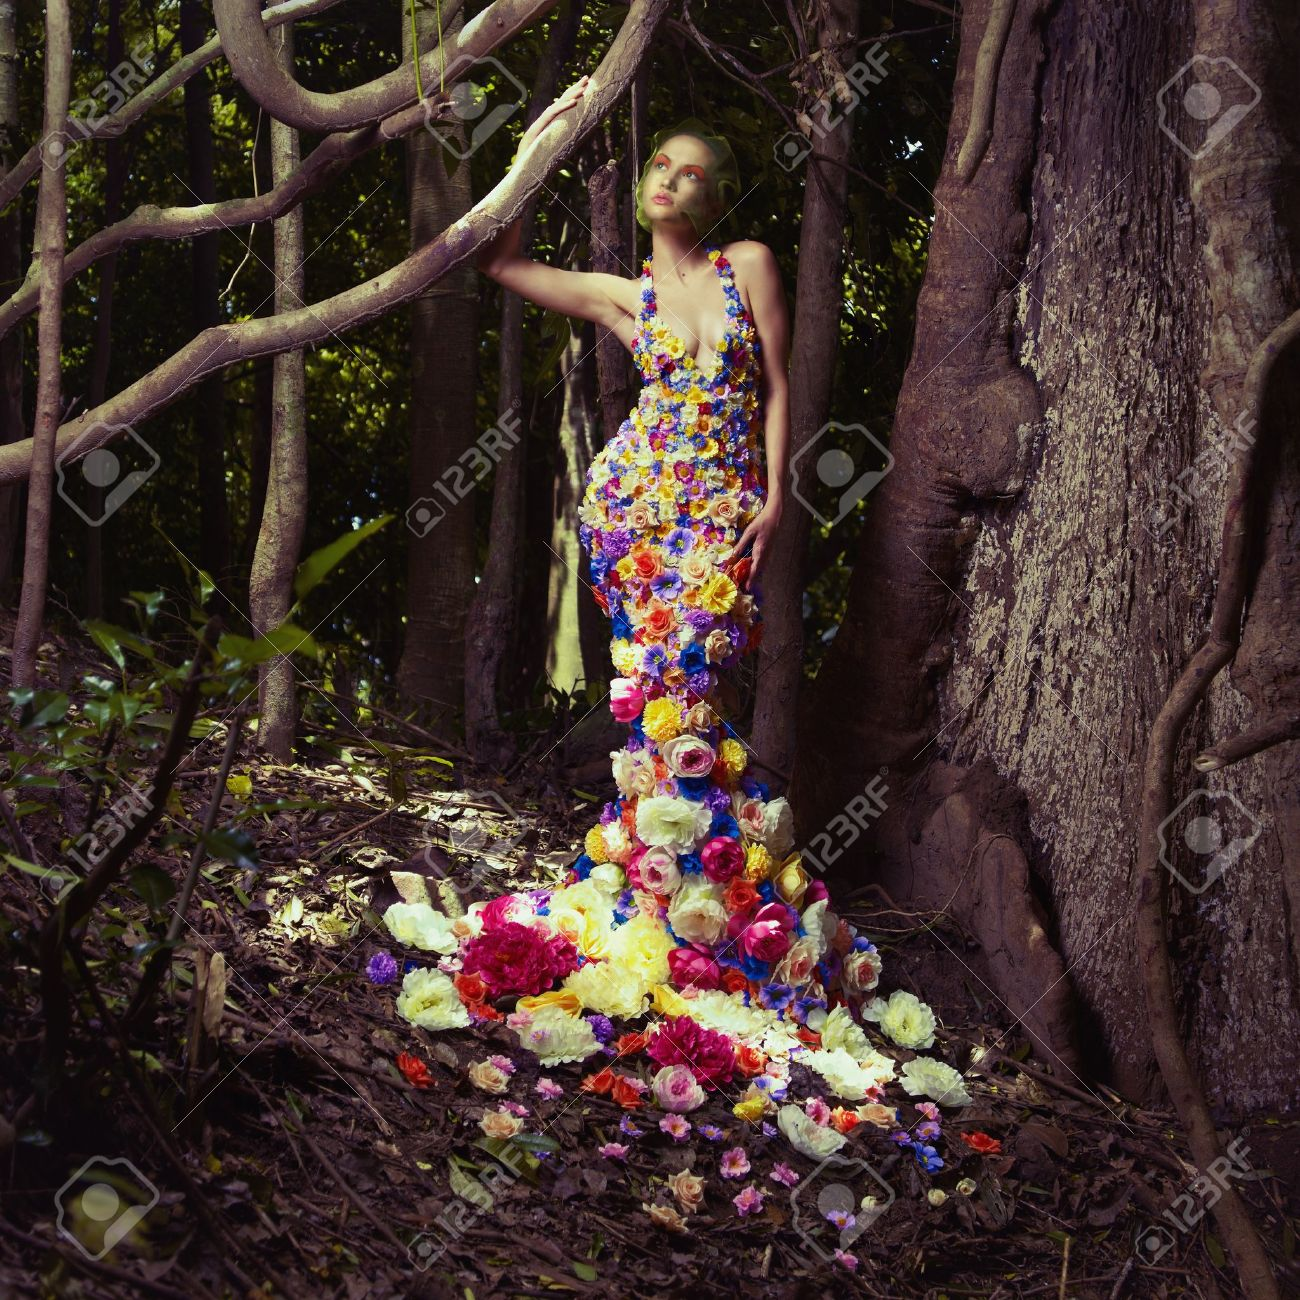 Blooming gorgeous lady in a dress of flowers in the rainforest Stock Photo - 17625971